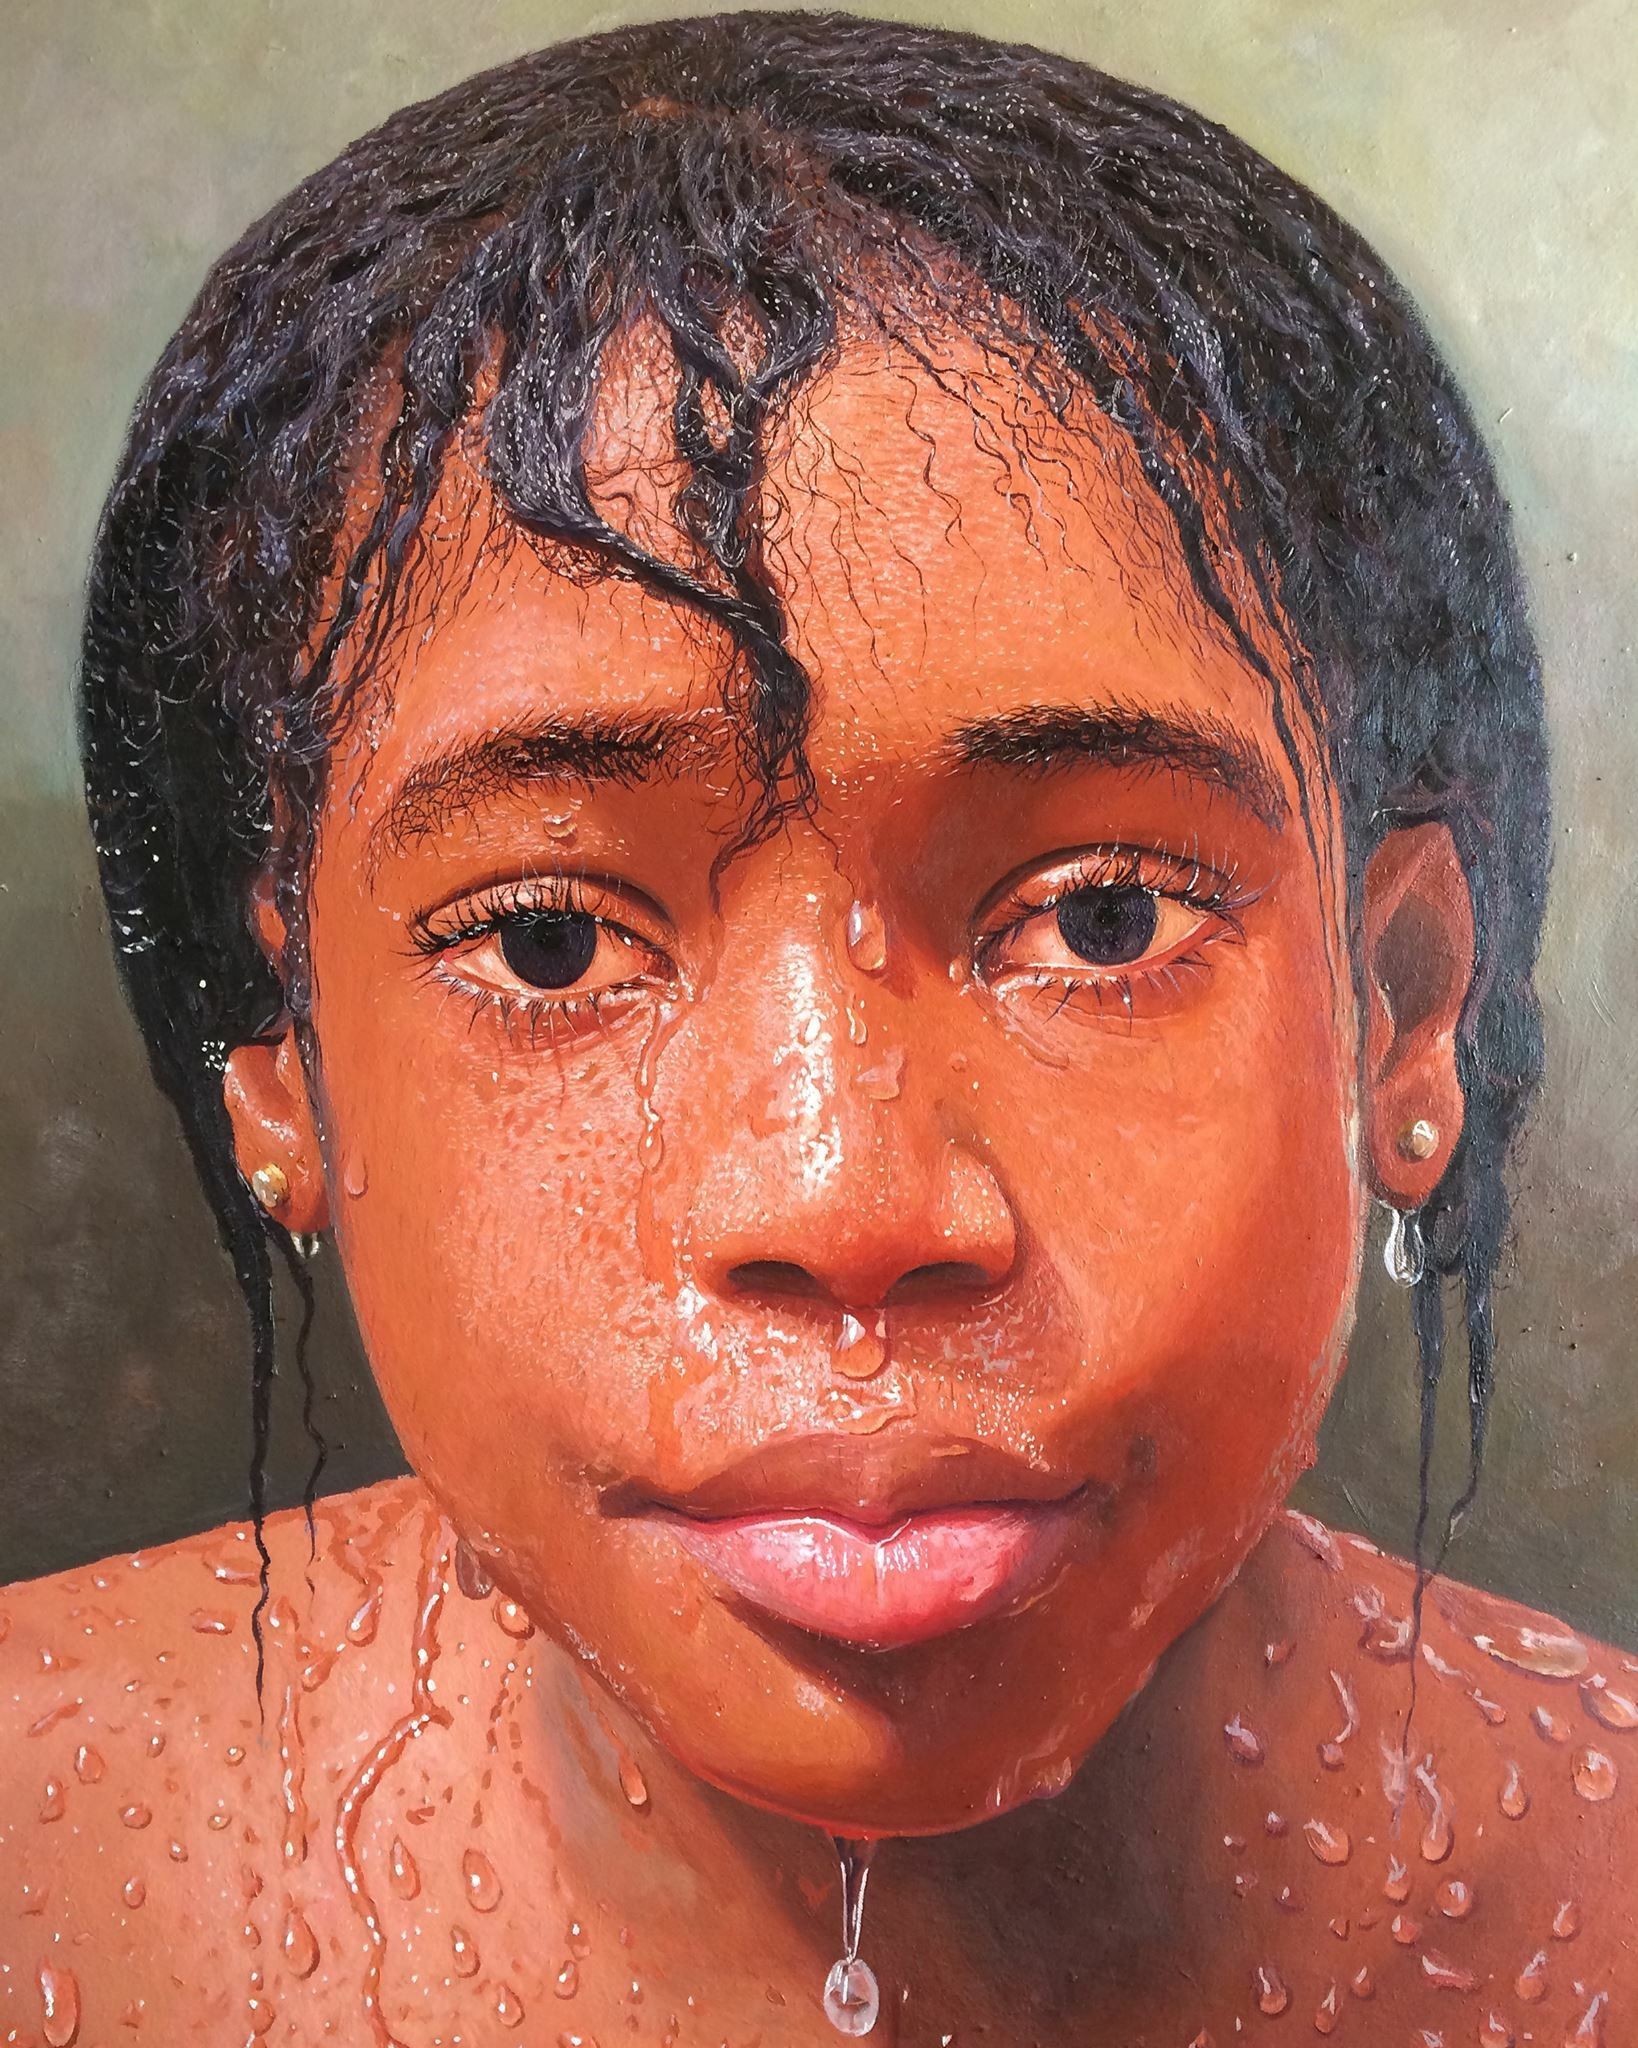 This picture looks so real but it is a drawing by a nigerian artist that lives in lagos nigeria by the name of oresegun olumide